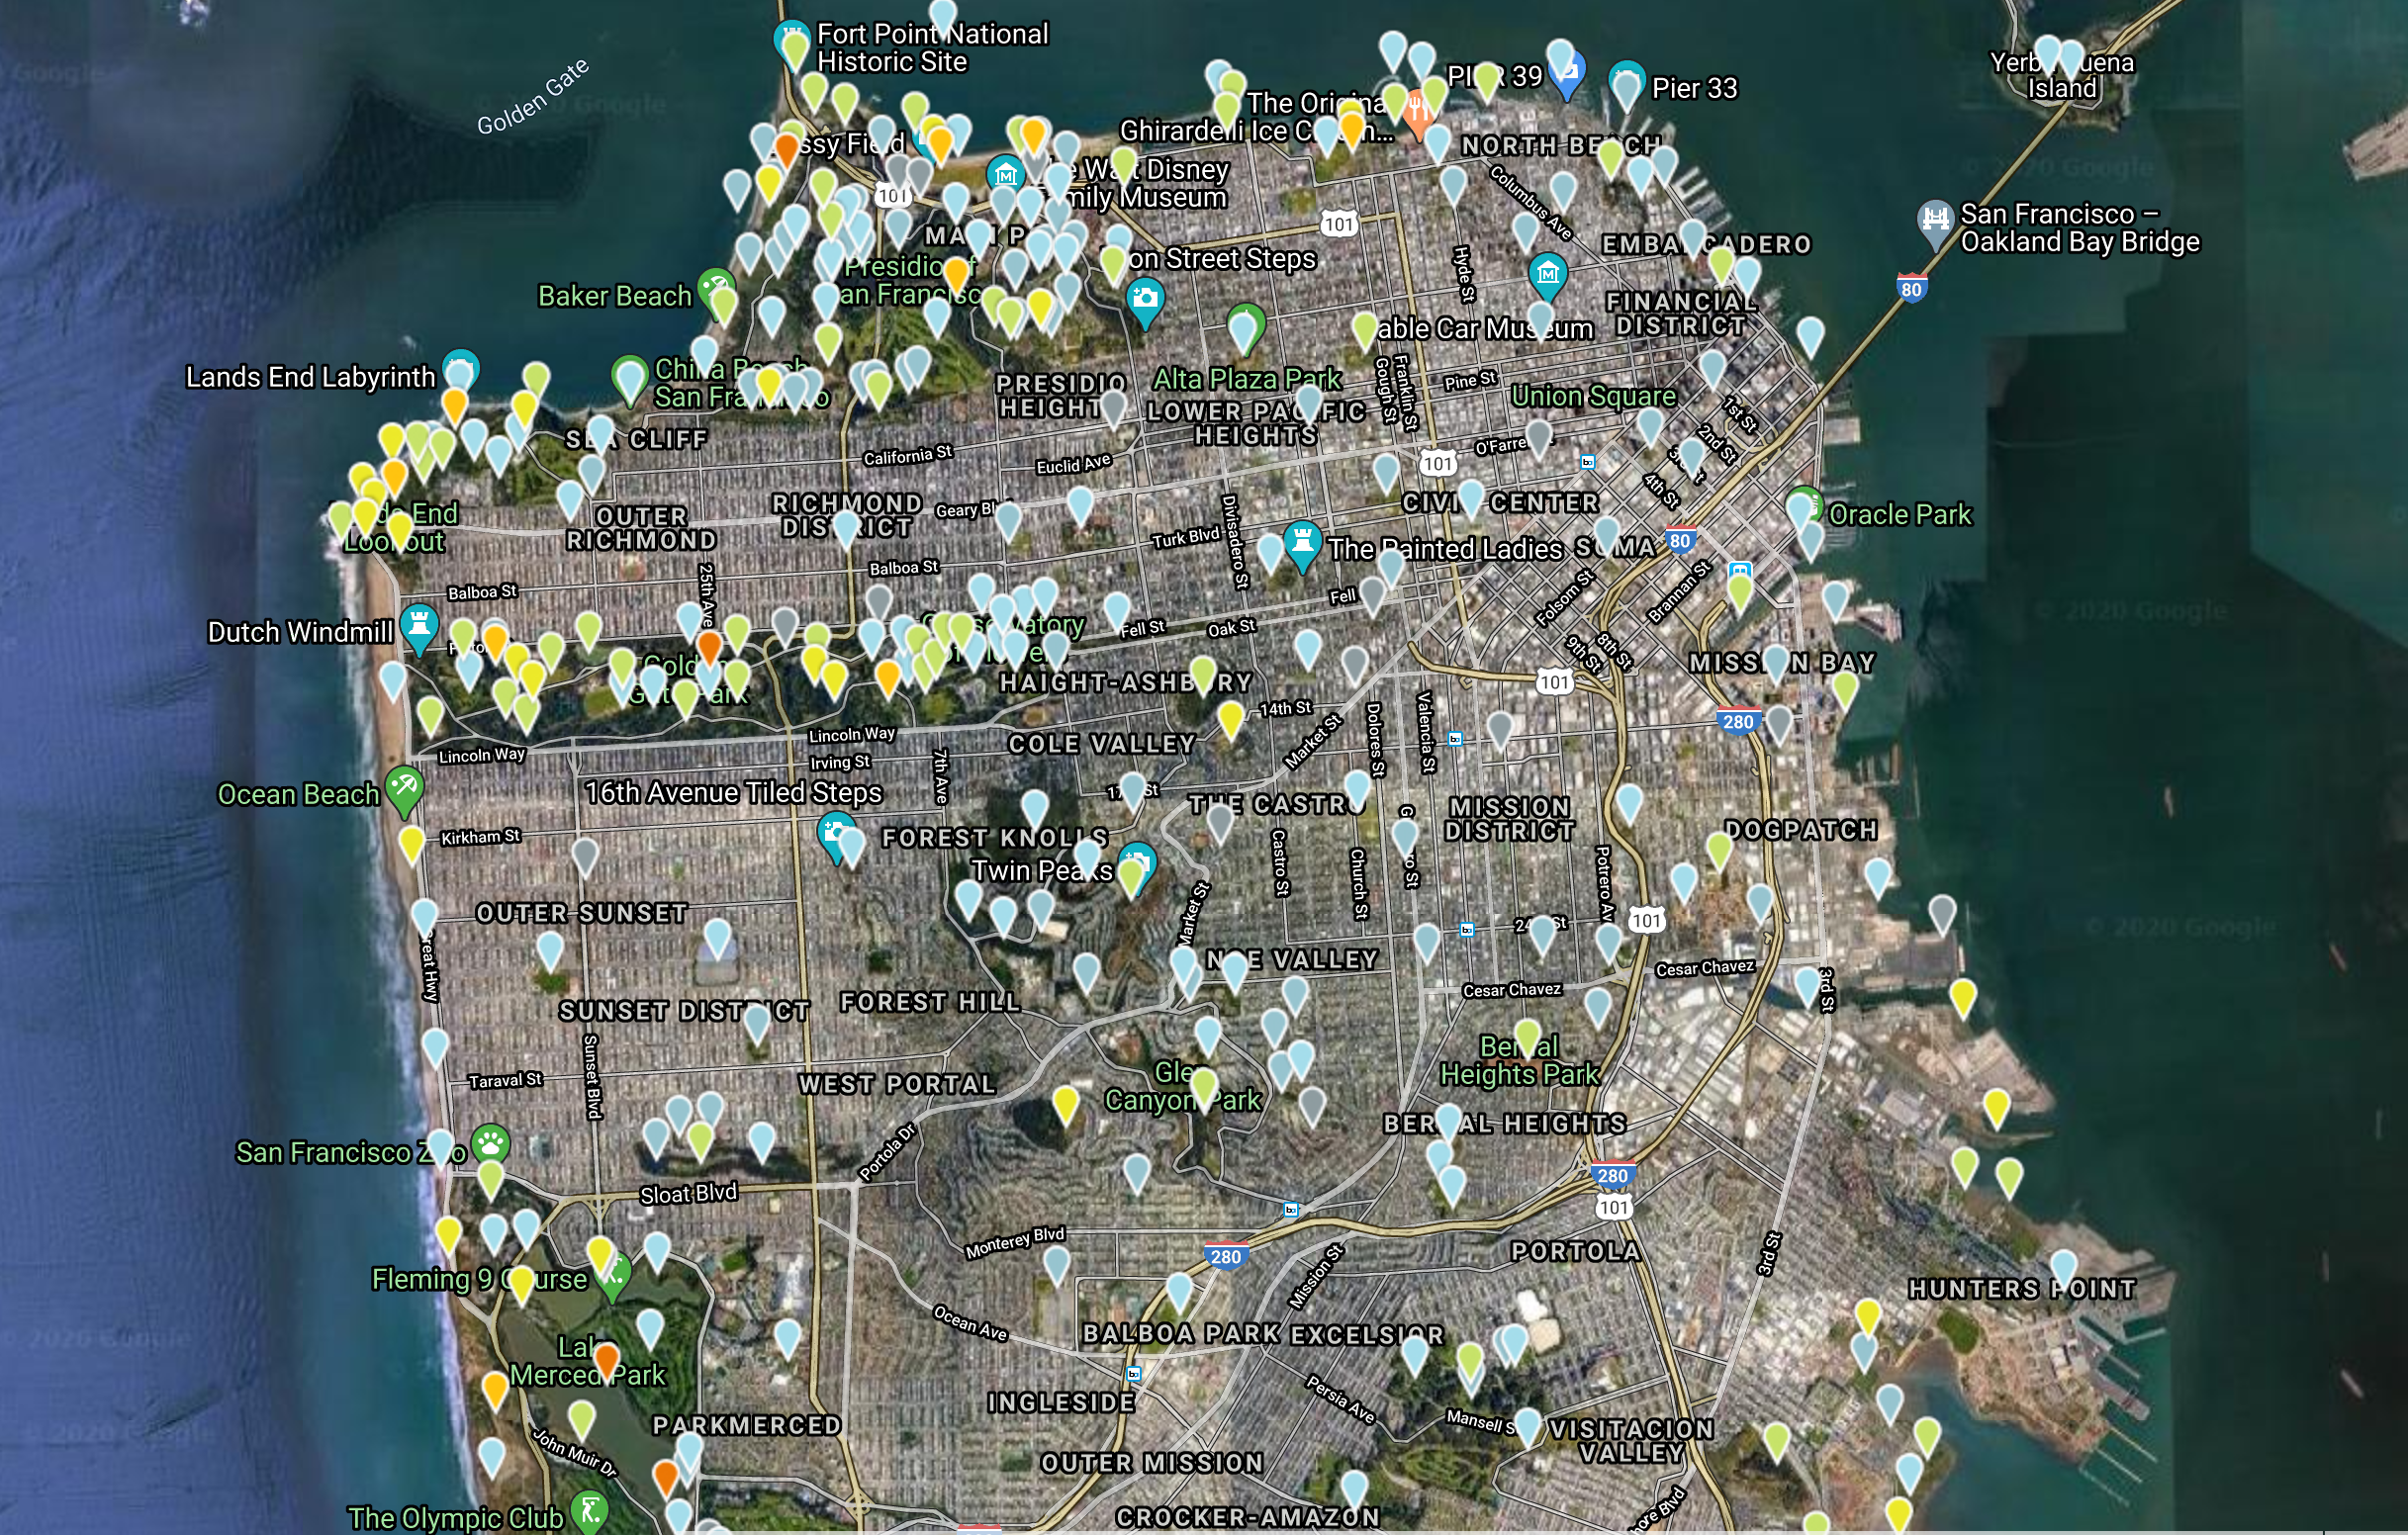 An image of a street map of San Francisco with hundreds of colored markers indicating birding hotpots.